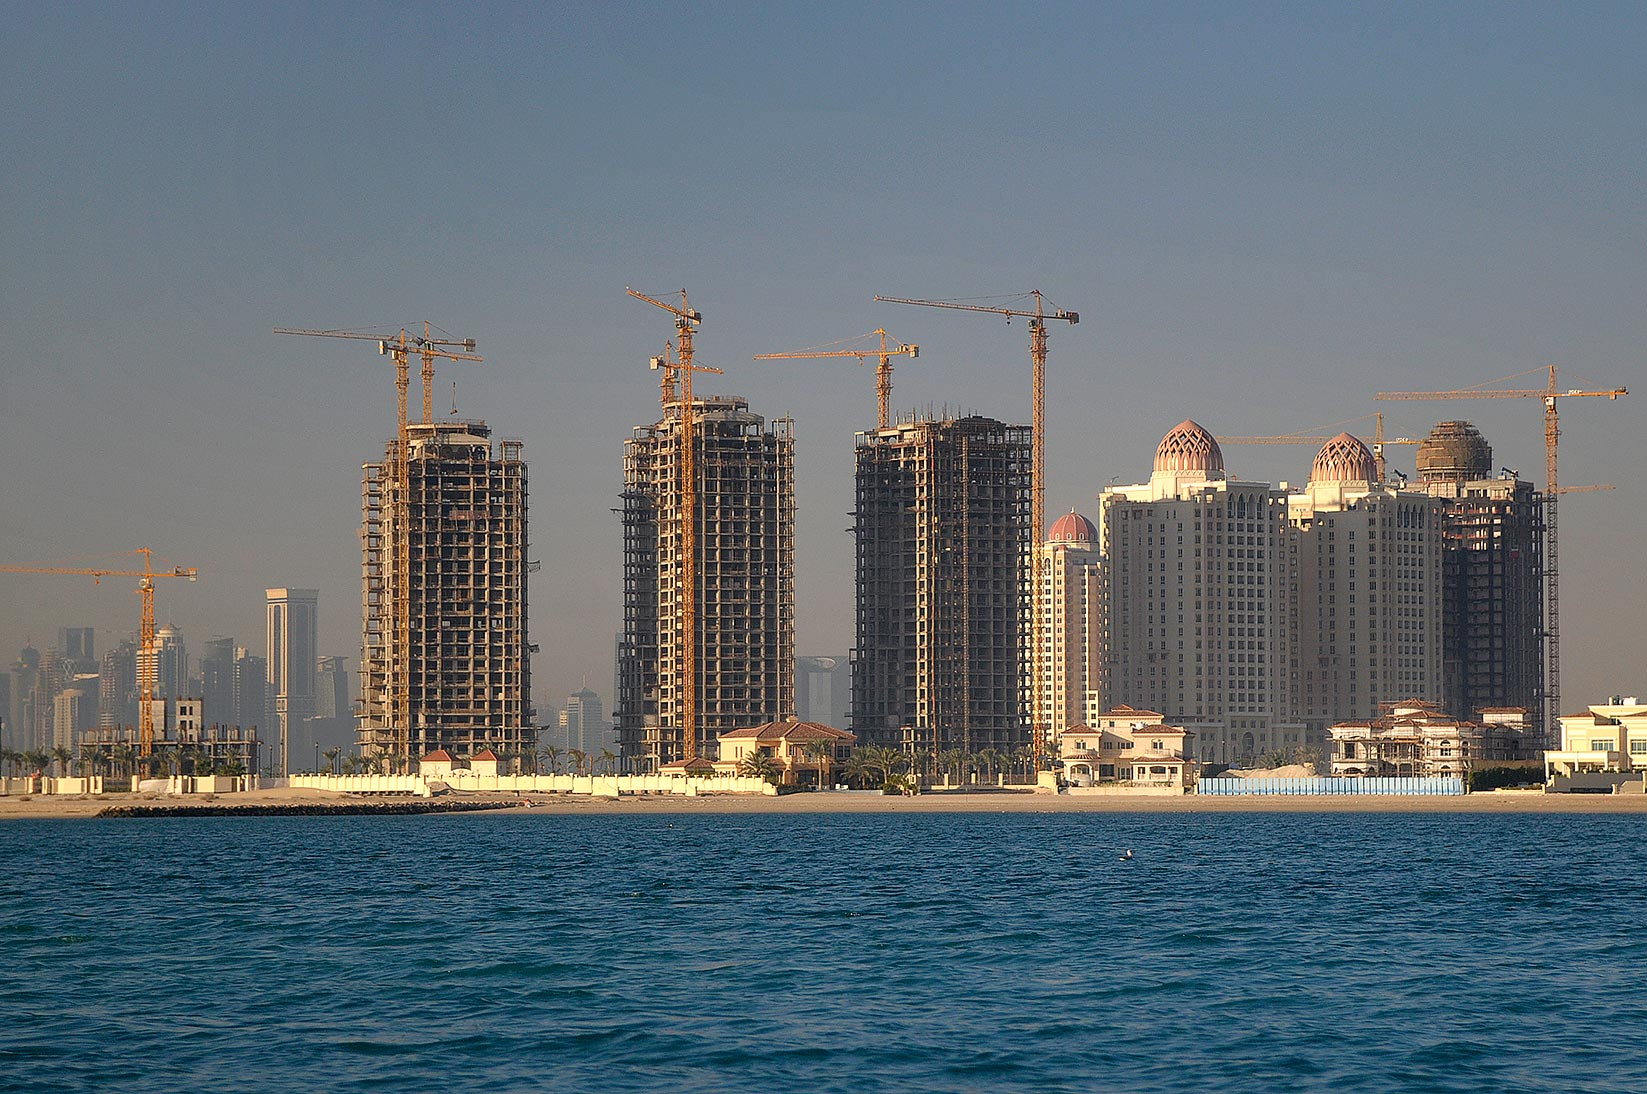 View of Pearl Qatar Development in Doha from a boat. Qatar